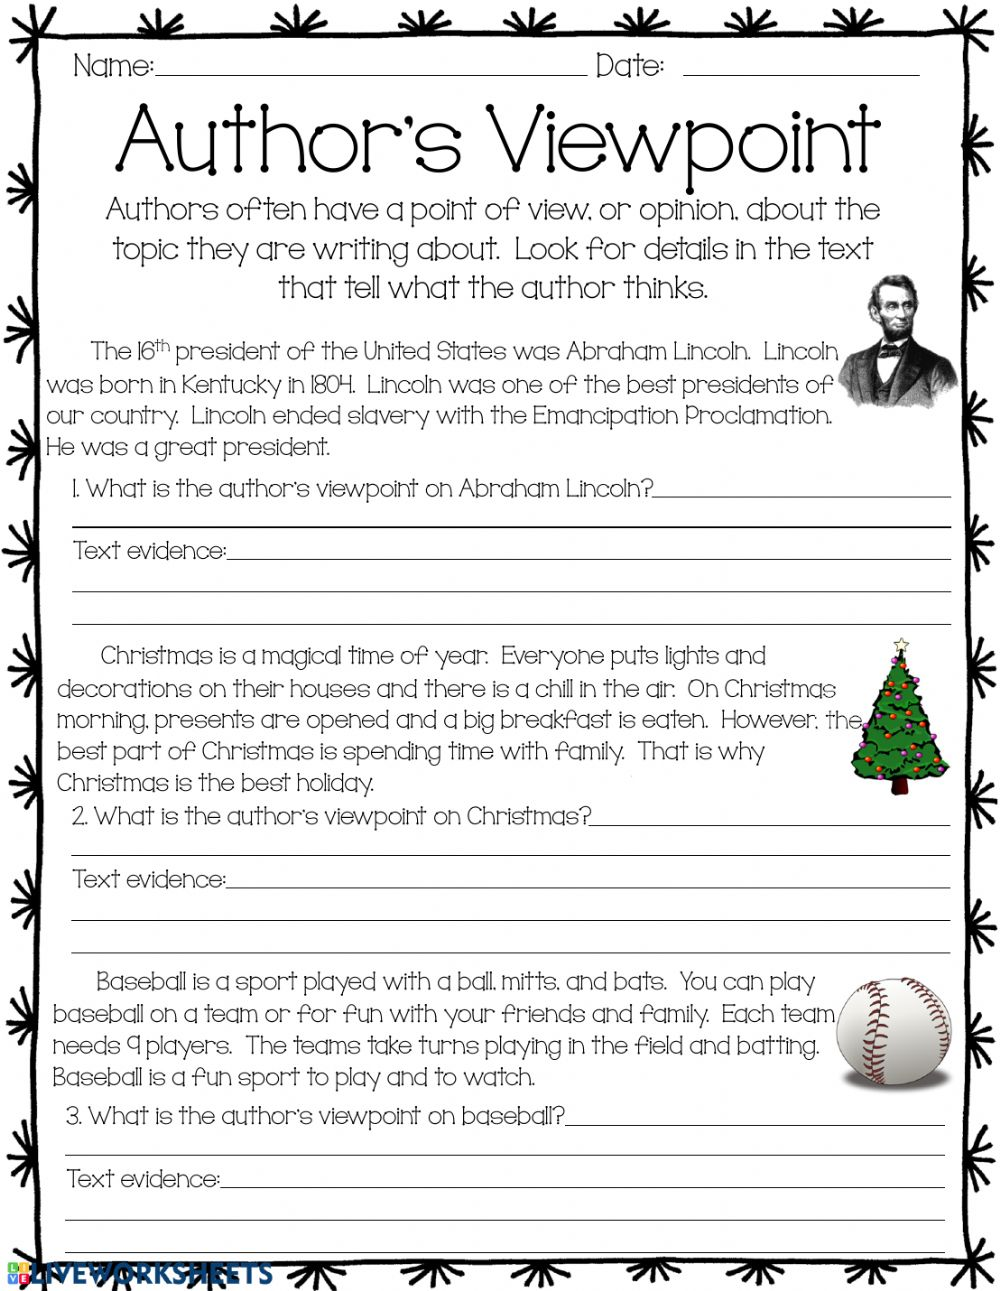 medium resolution of Author's Viewpoint worksheet